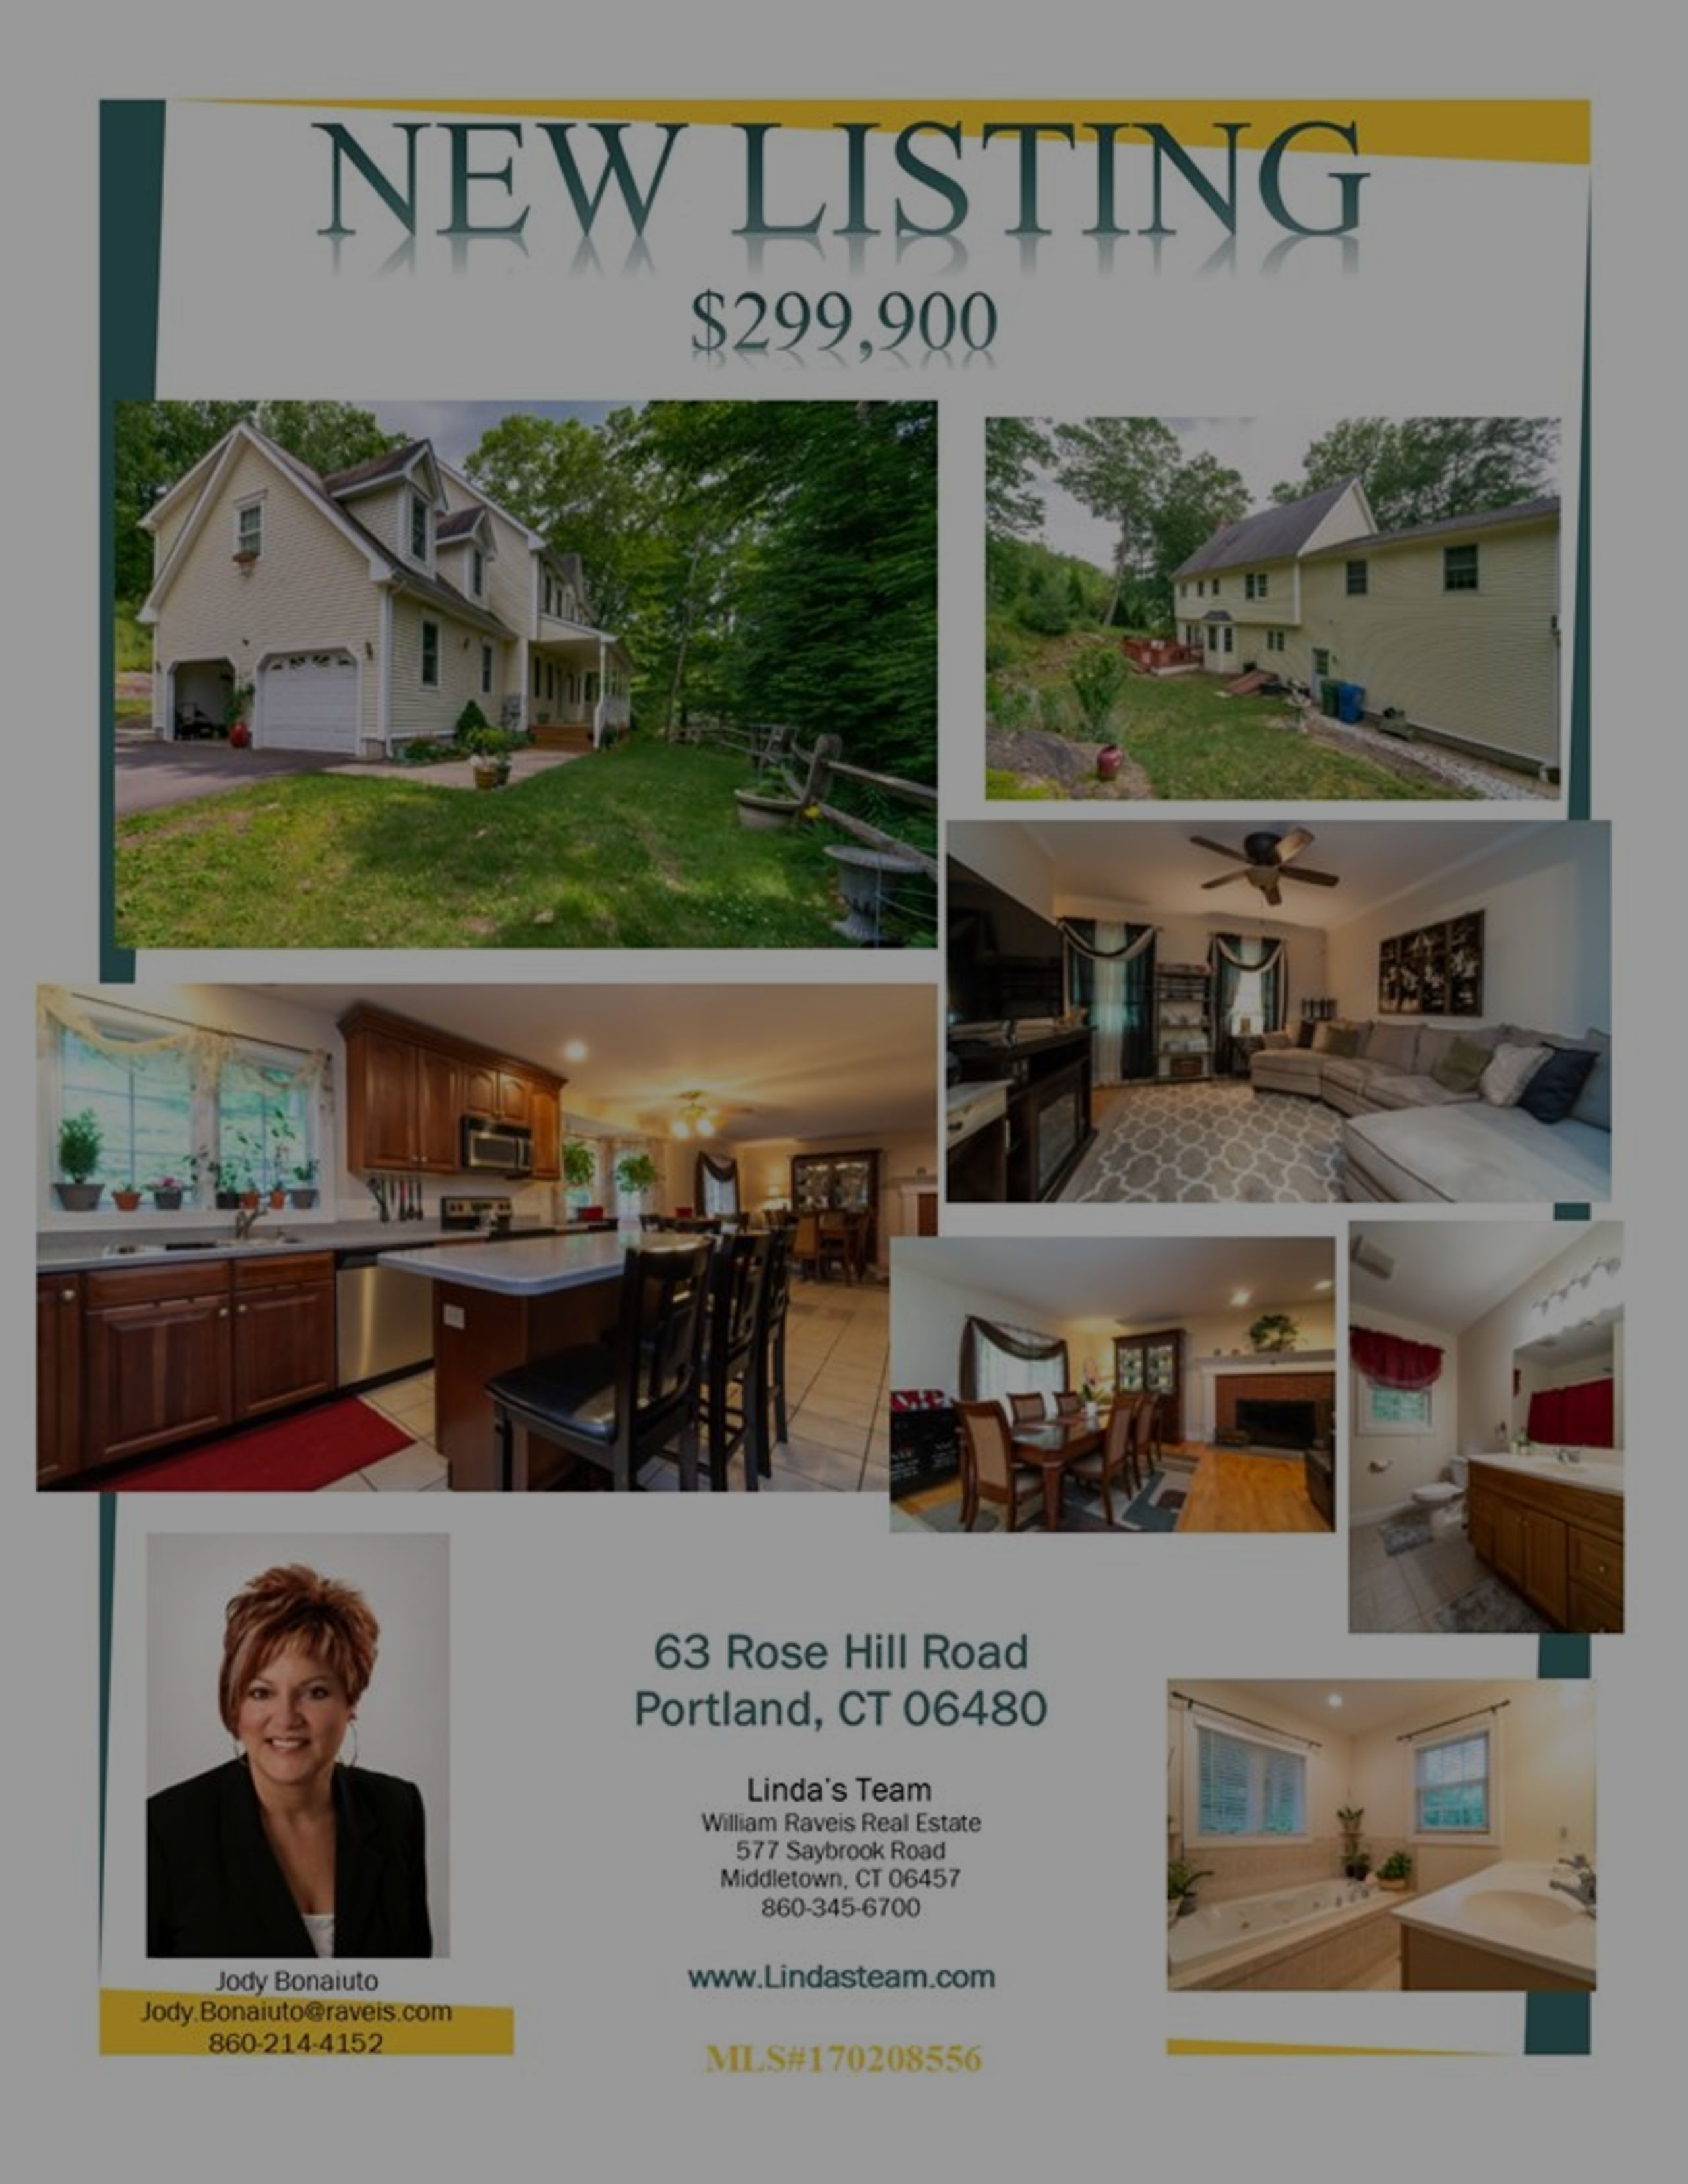 *NEW LISTING* 63 Rose Hill Road, Potrland, CT 06480